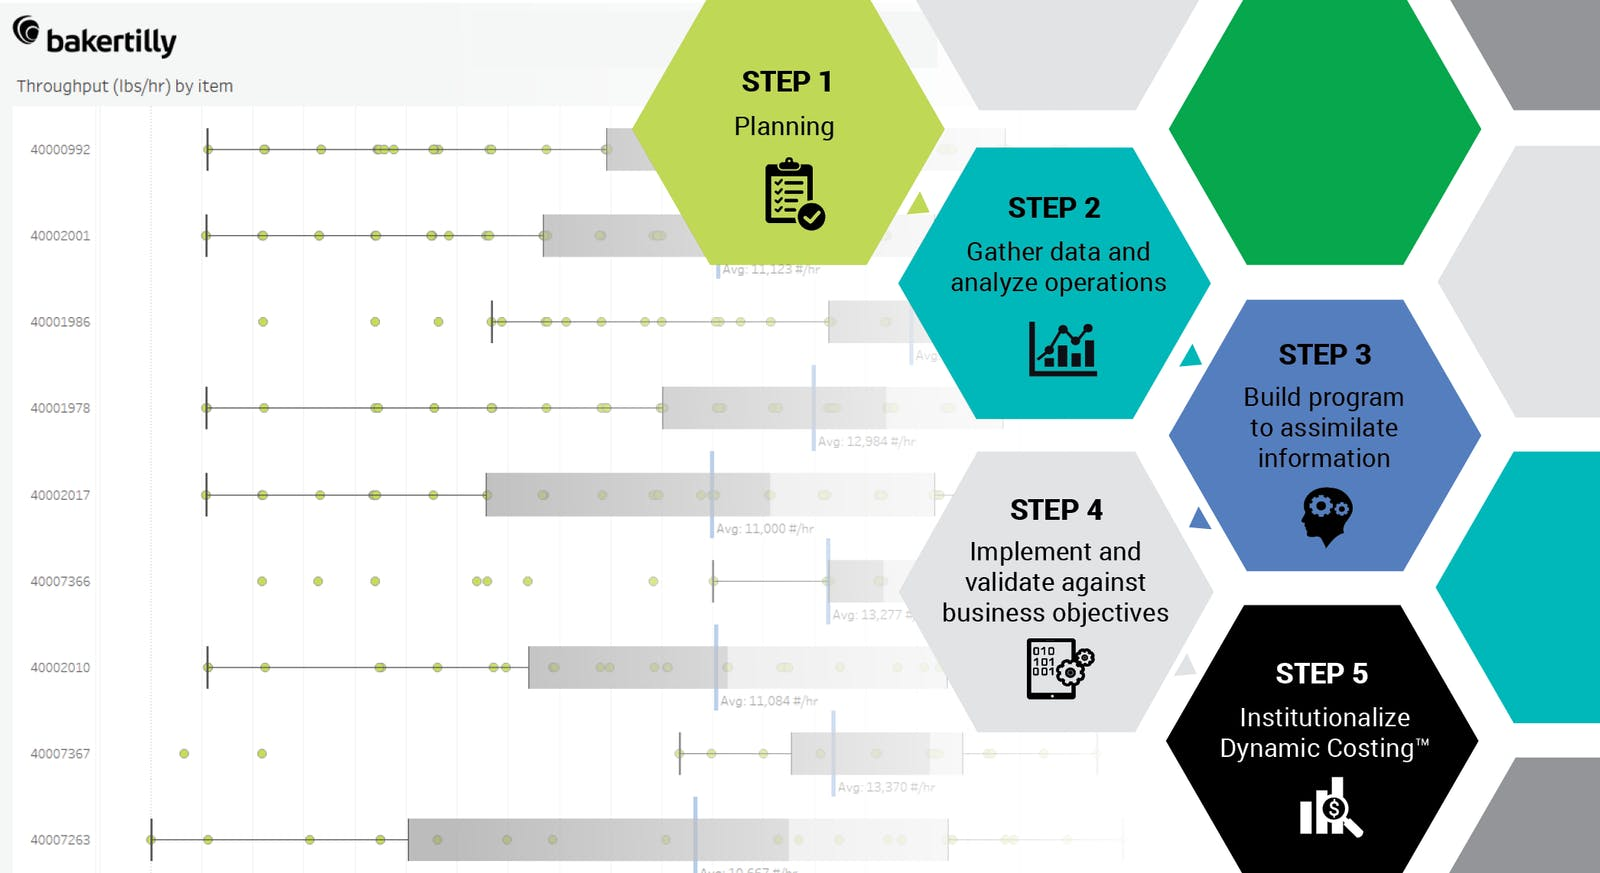 The 5 step Dynamic Costing™ road map to execution within the Industry 4.0 environment